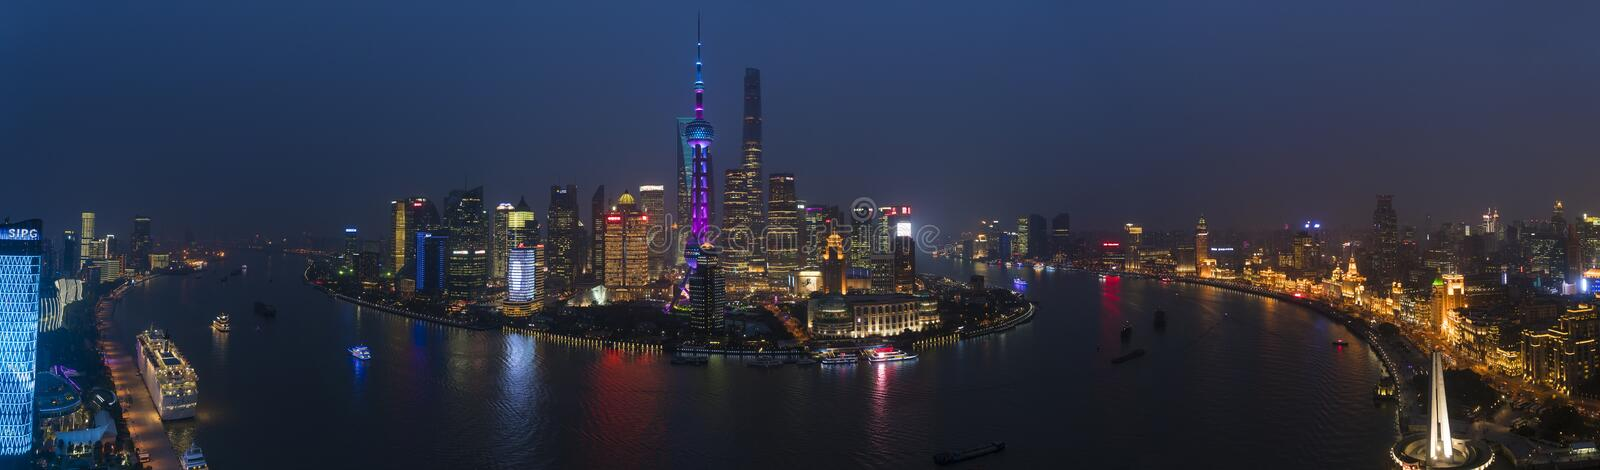 View over Huangpu River and Pudong skyline at night, Shanghai stock photo